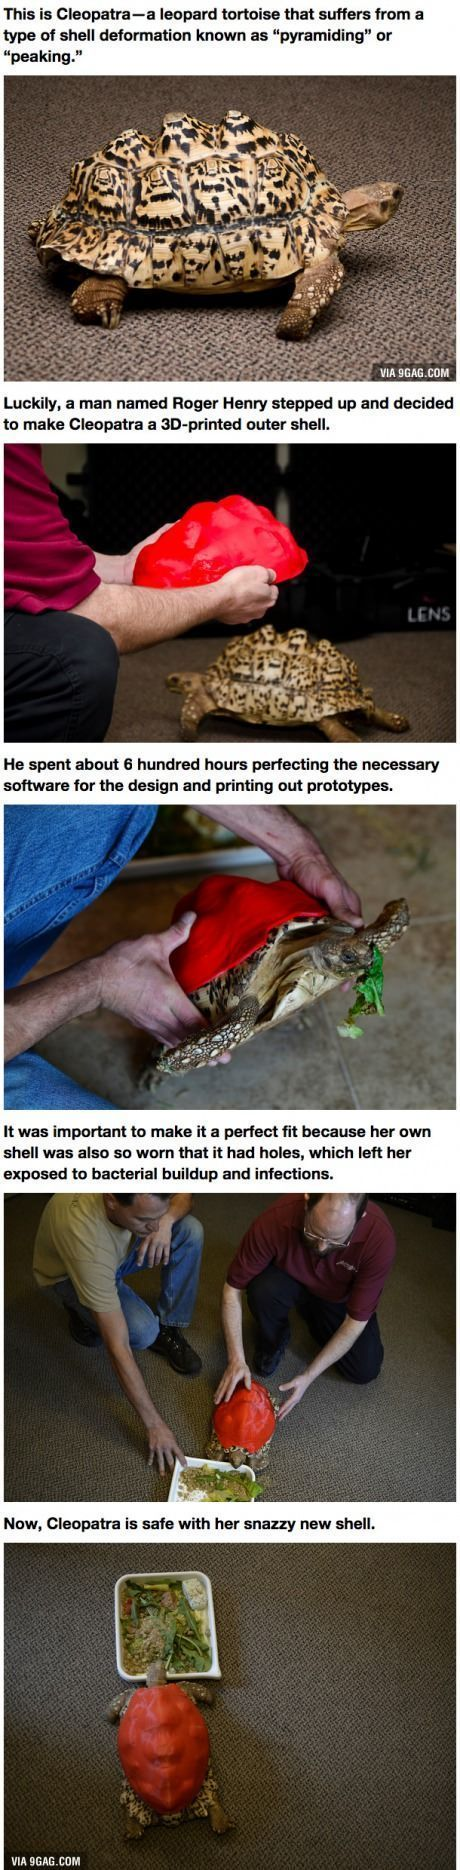 3D-Printed Shell Helps Tortoise Gets A Second Chance At Life!